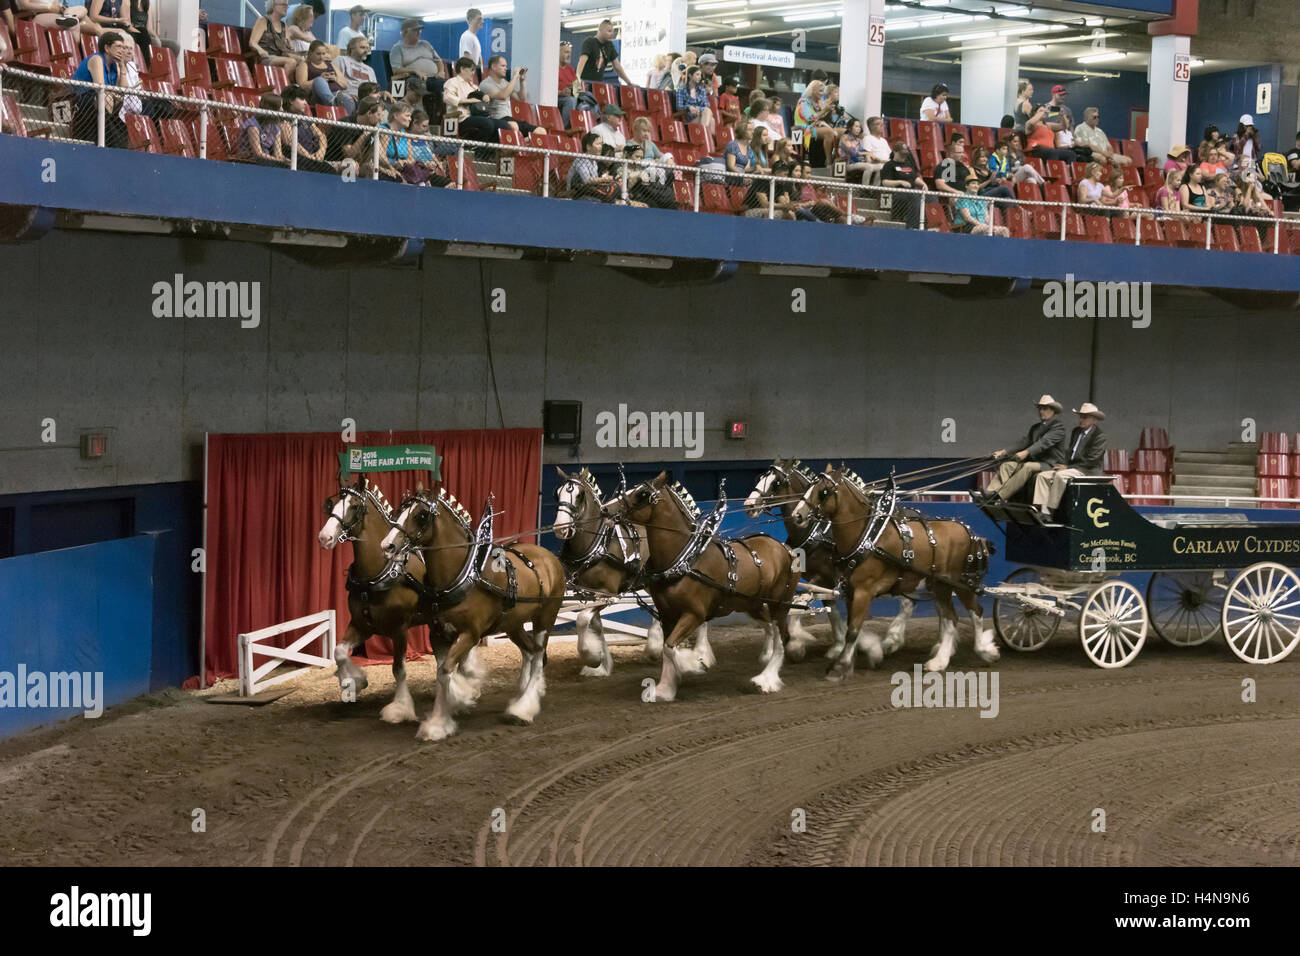 Gorgeous matched team of Clydesdale draft horses, Pacific National Exhibition, Vancouver, Canada - Stock Image